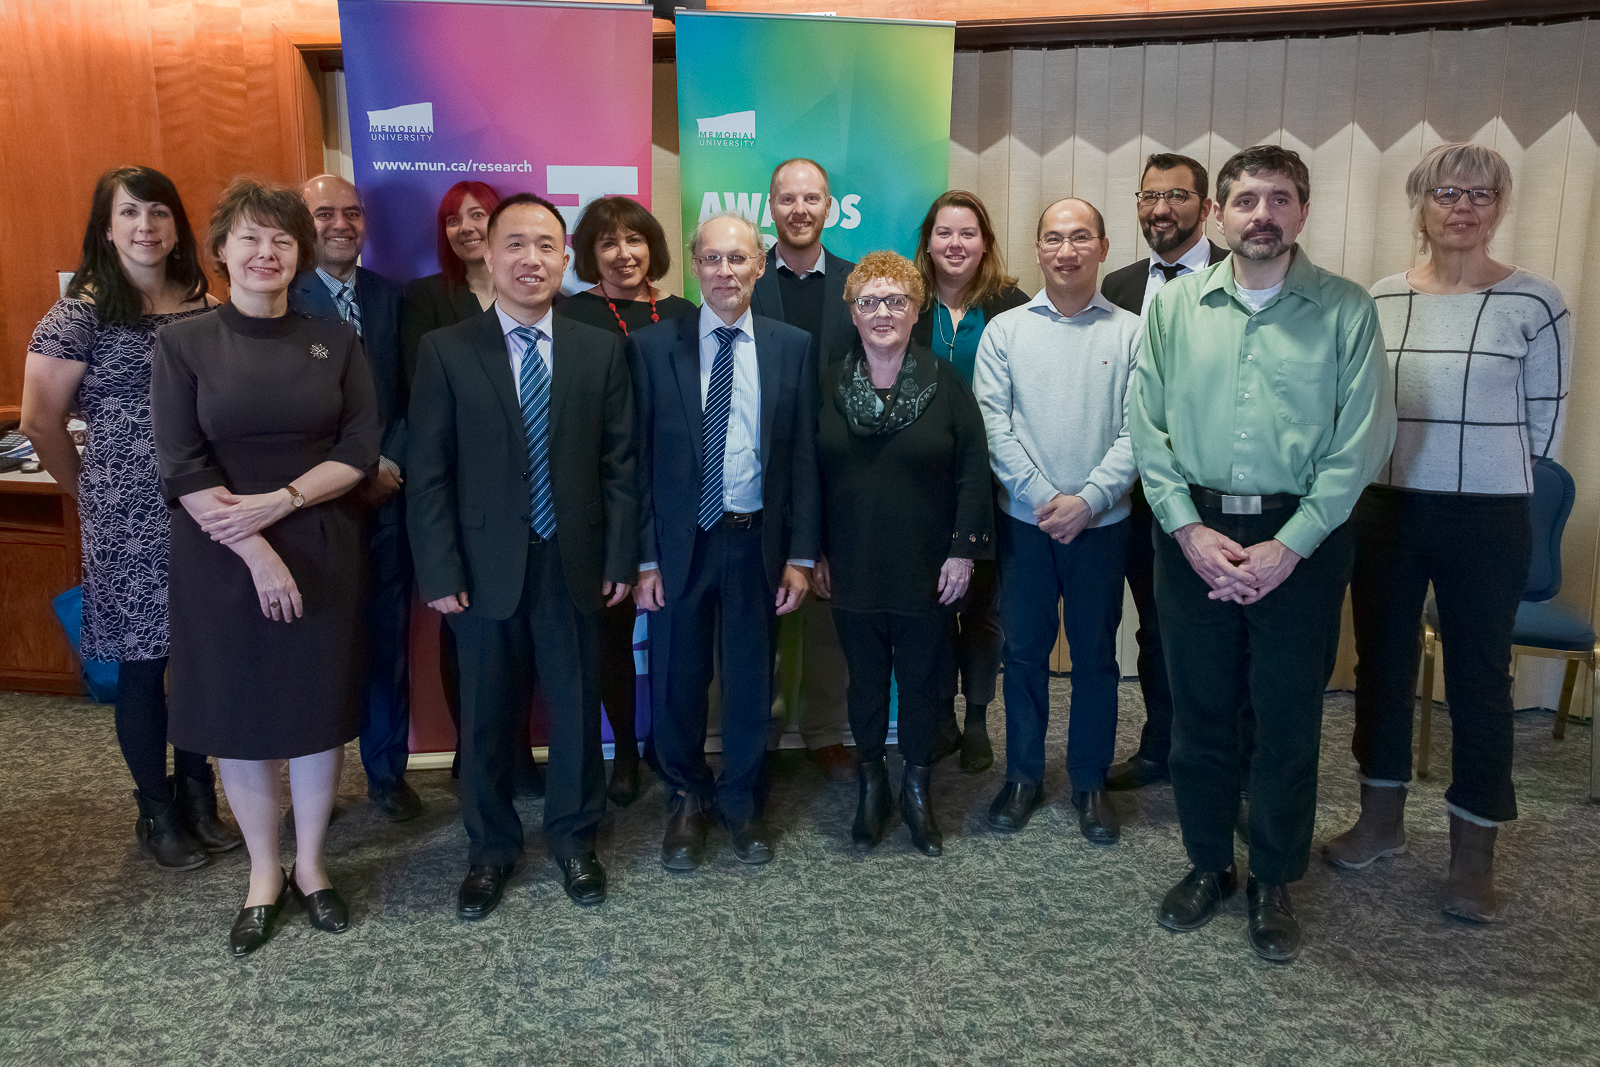 From left (front row) are: Dr. Kati Szego; Dr. Xili Duan; Dr. Neil Bose; Marilyn Harvey; Dr. Hai Nguyen; and Dr. Nicholas Welch. From left (back row) are: Dr. Katleen Robert; Dr. Faisal Khan; Karen Kelly; Dr. Noreen Golfman; Dr. John Jamieson; Dr. Rachel Sipler; Dr. Touati Benoukraf; and Dr. Uta Passow.